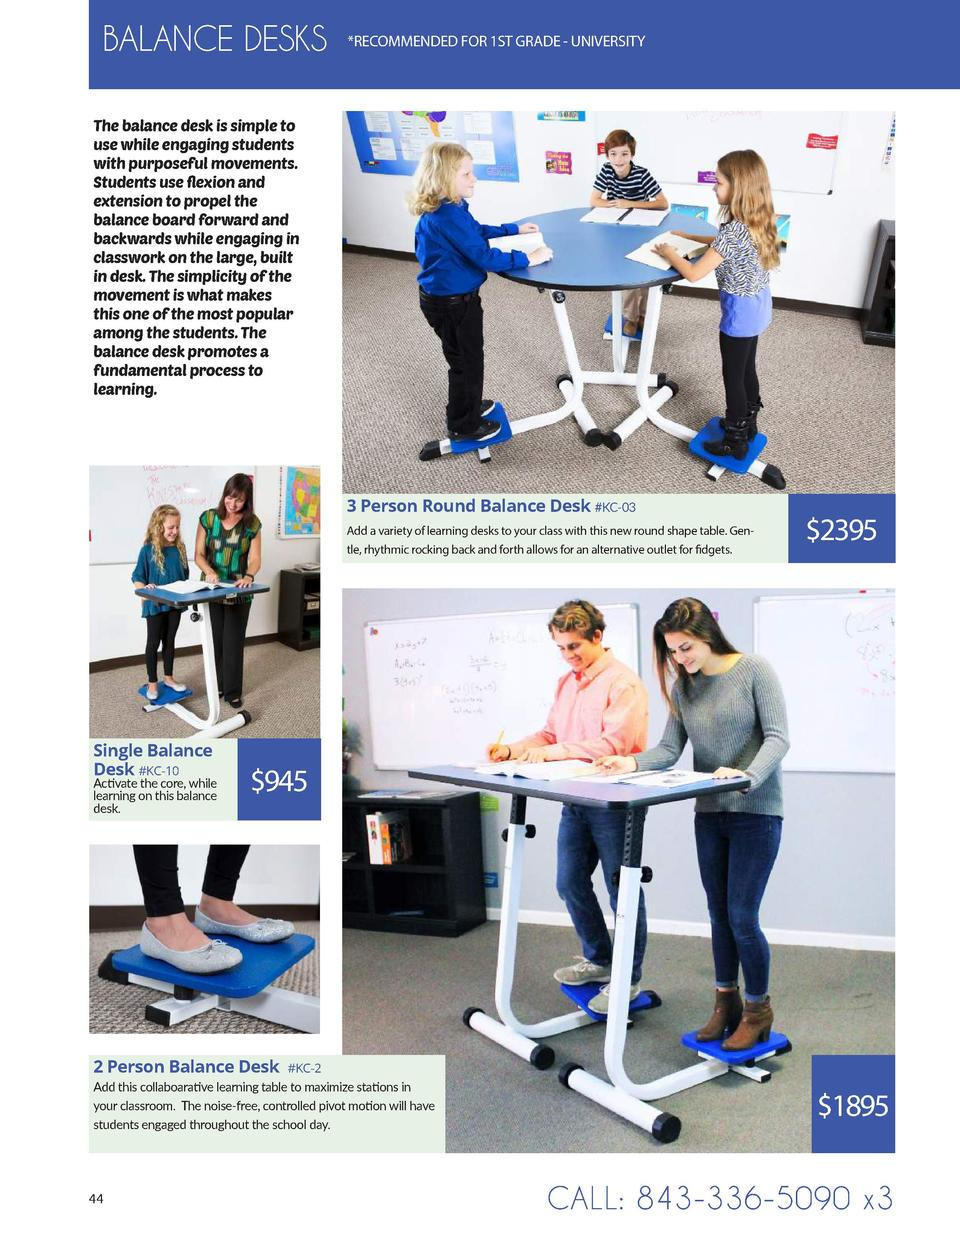 BALANCE DESKS   RECOMMENDED FOR 1ST GRADE - UNIVERSITY  The balance desk is simple to use while engaging students with pur...